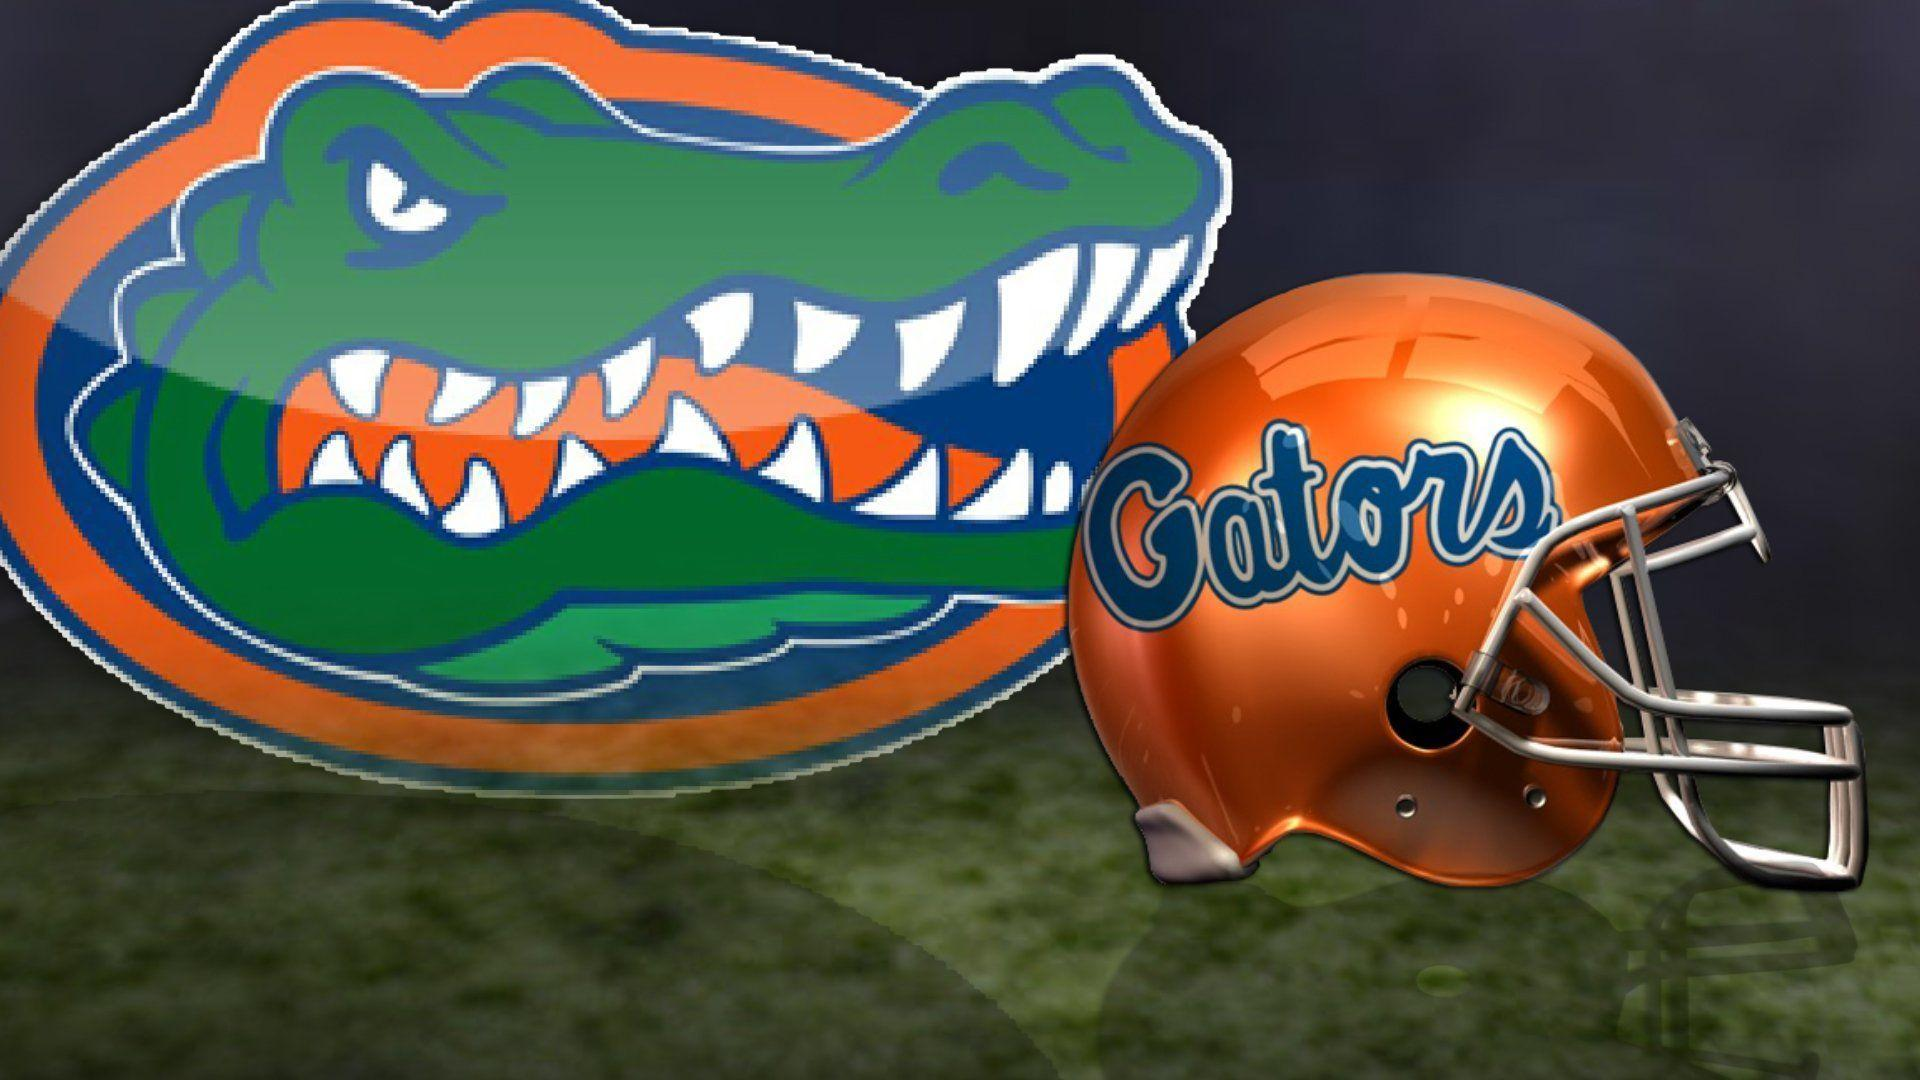 Florida Gators Wallpaper HD - WallpaperSafari